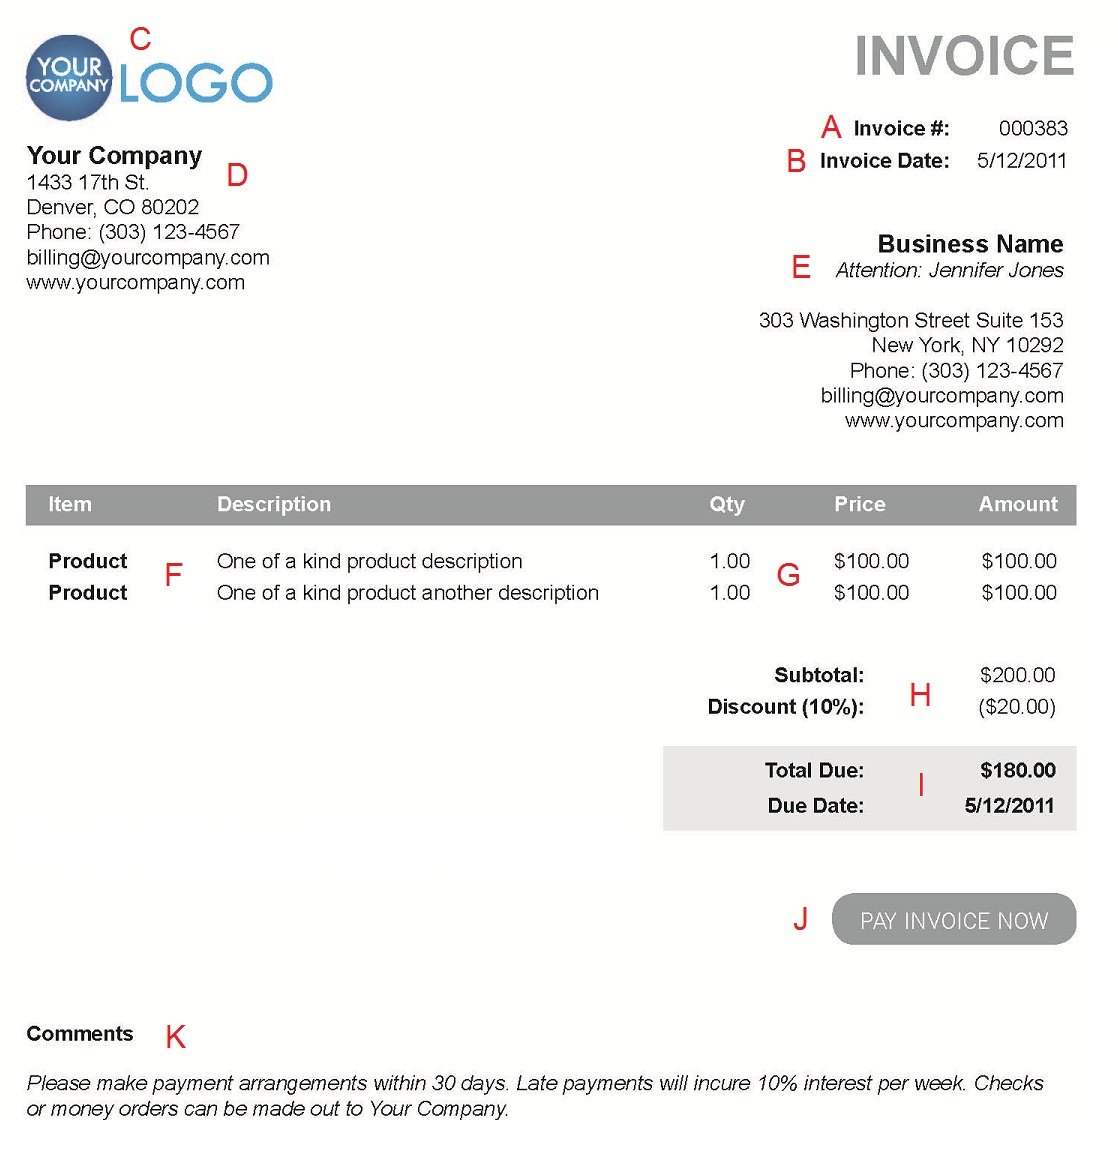 Bringjacobolivierhomeus  Pleasing The  Different Sections Of An Electronic Payment Invoice With Heavenly A  With Amusing Ticket Receipt Template Also Idaho Child Support Receipting In Addition Receipt Creator App And Seneca College Tax Receipt As Well As How To Make A Fake Walmart Receipt Additionally Where Is The Usps Tracking Number On Receipt From Paysimplecom With Bringjacobolivierhomeus  Heavenly The  Different Sections Of An Electronic Payment Invoice With Amusing A  And Pleasing Ticket Receipt Template Also Idaho Child Support Receipting In Addition Receipt Creator App From Paysimplecom